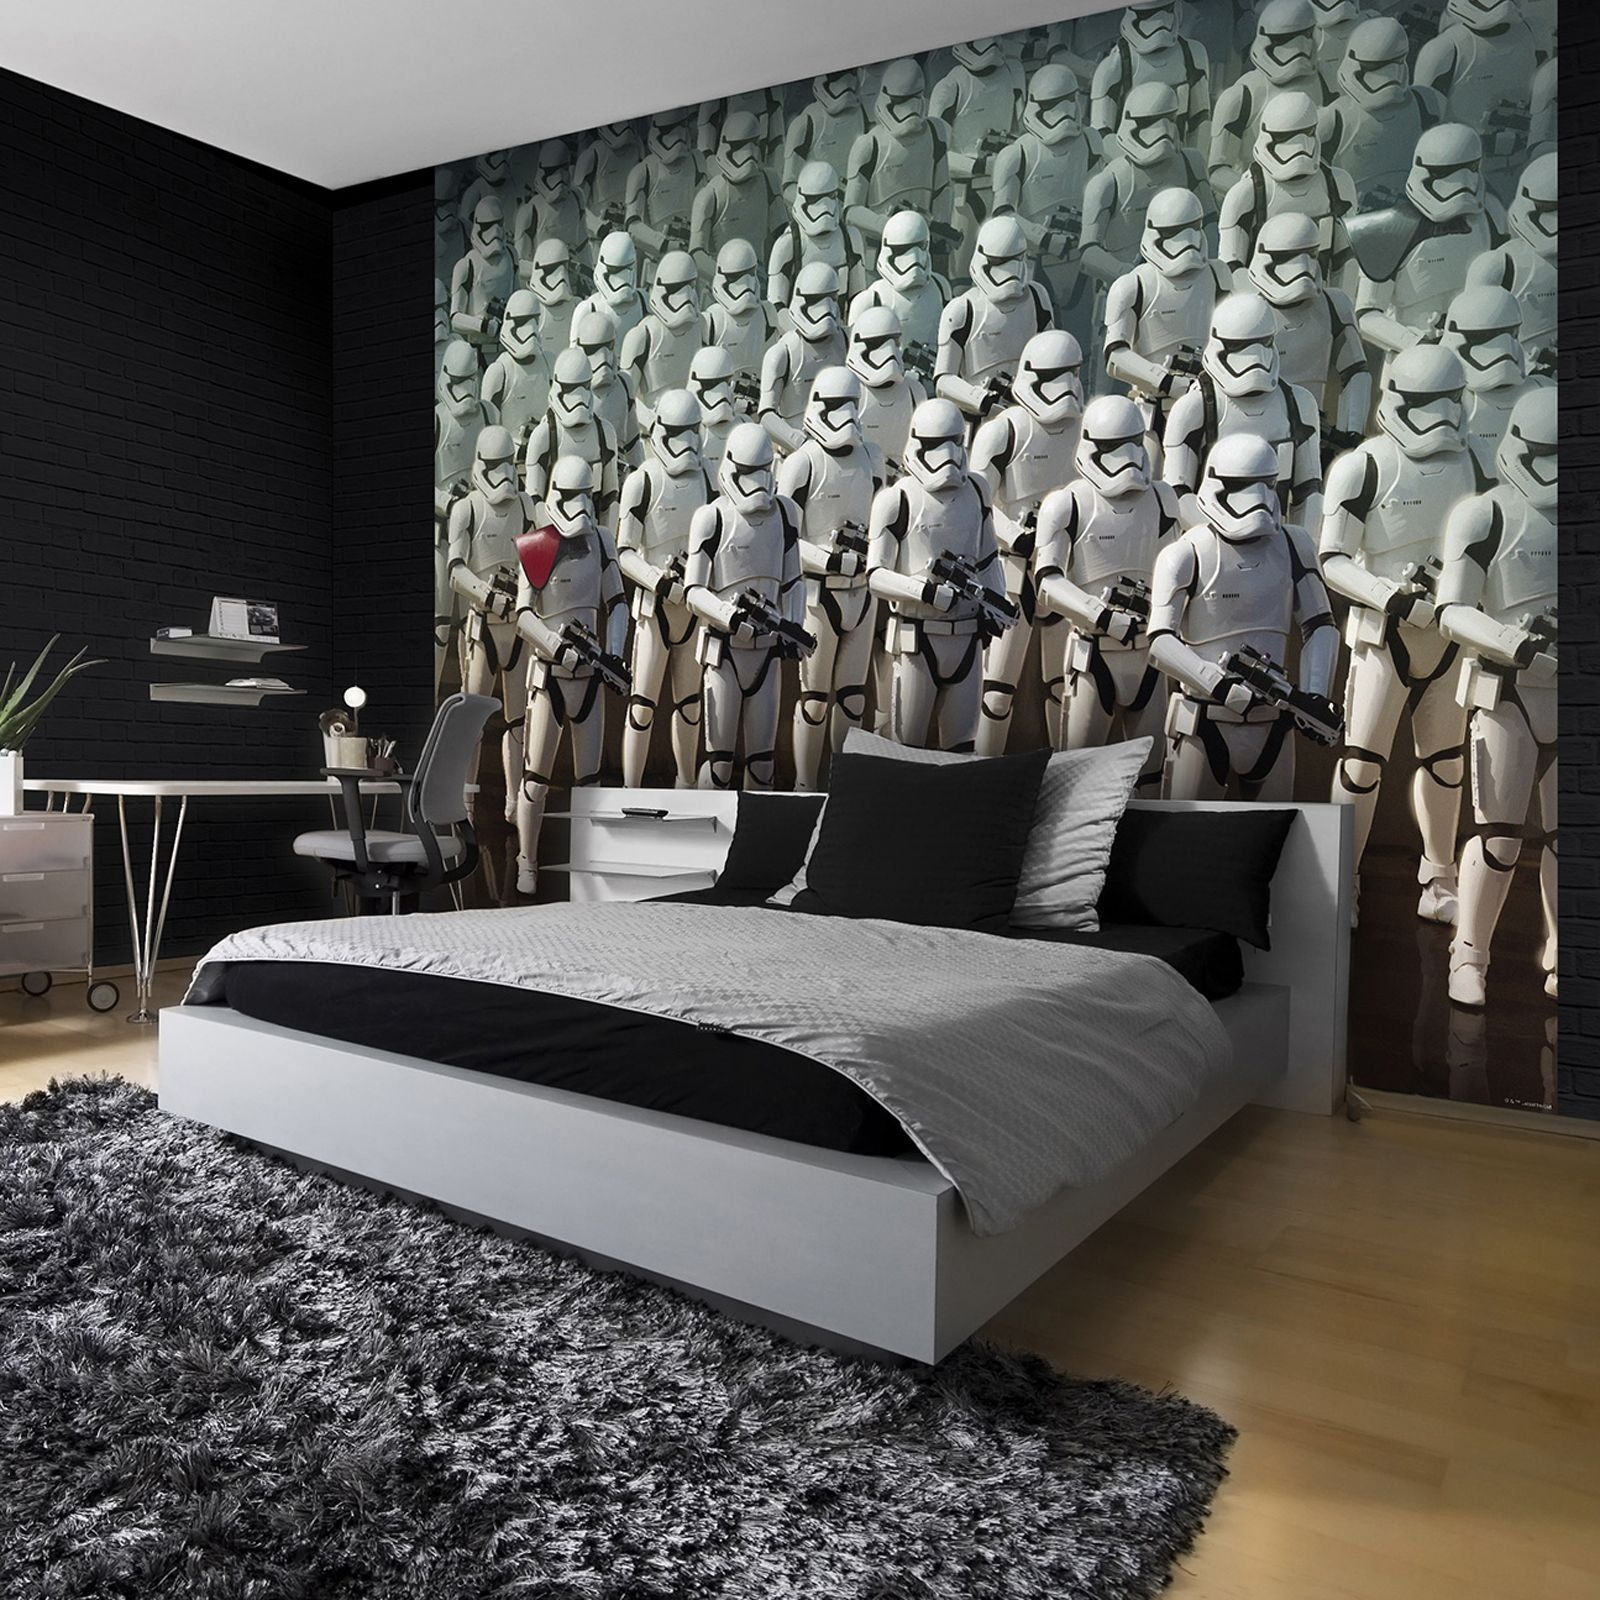 25 Cool And Attractive Space Theme Room For Boys And Girls Star